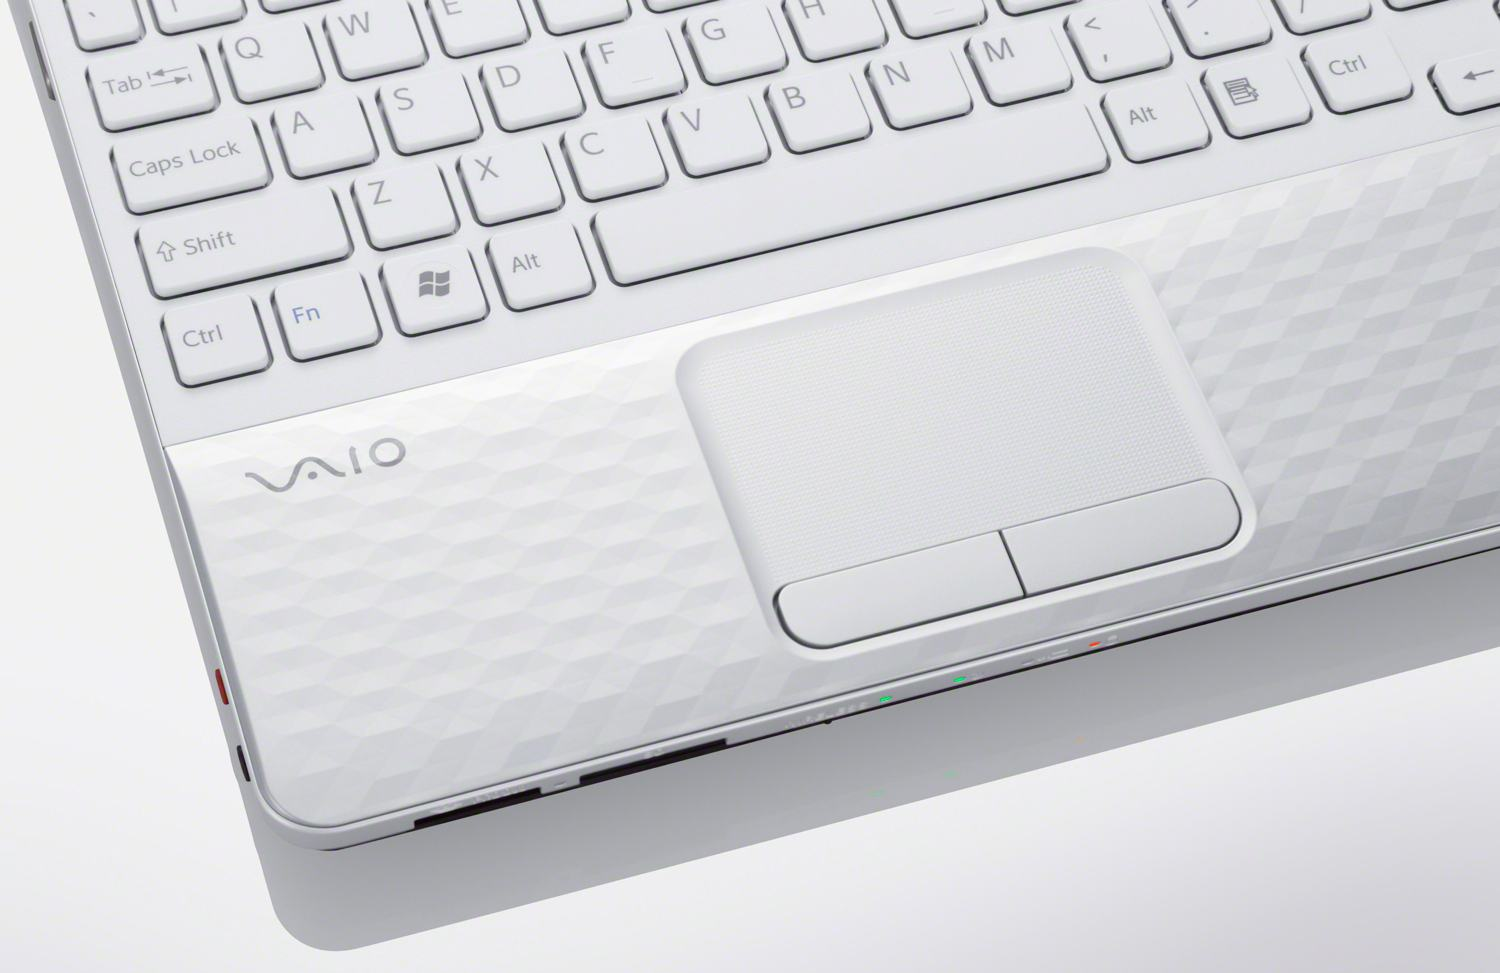 http://images.amazon.com/images/G/01/electronics/sony/sony-11q4-vaio-eh-white-detail-lg.jpg